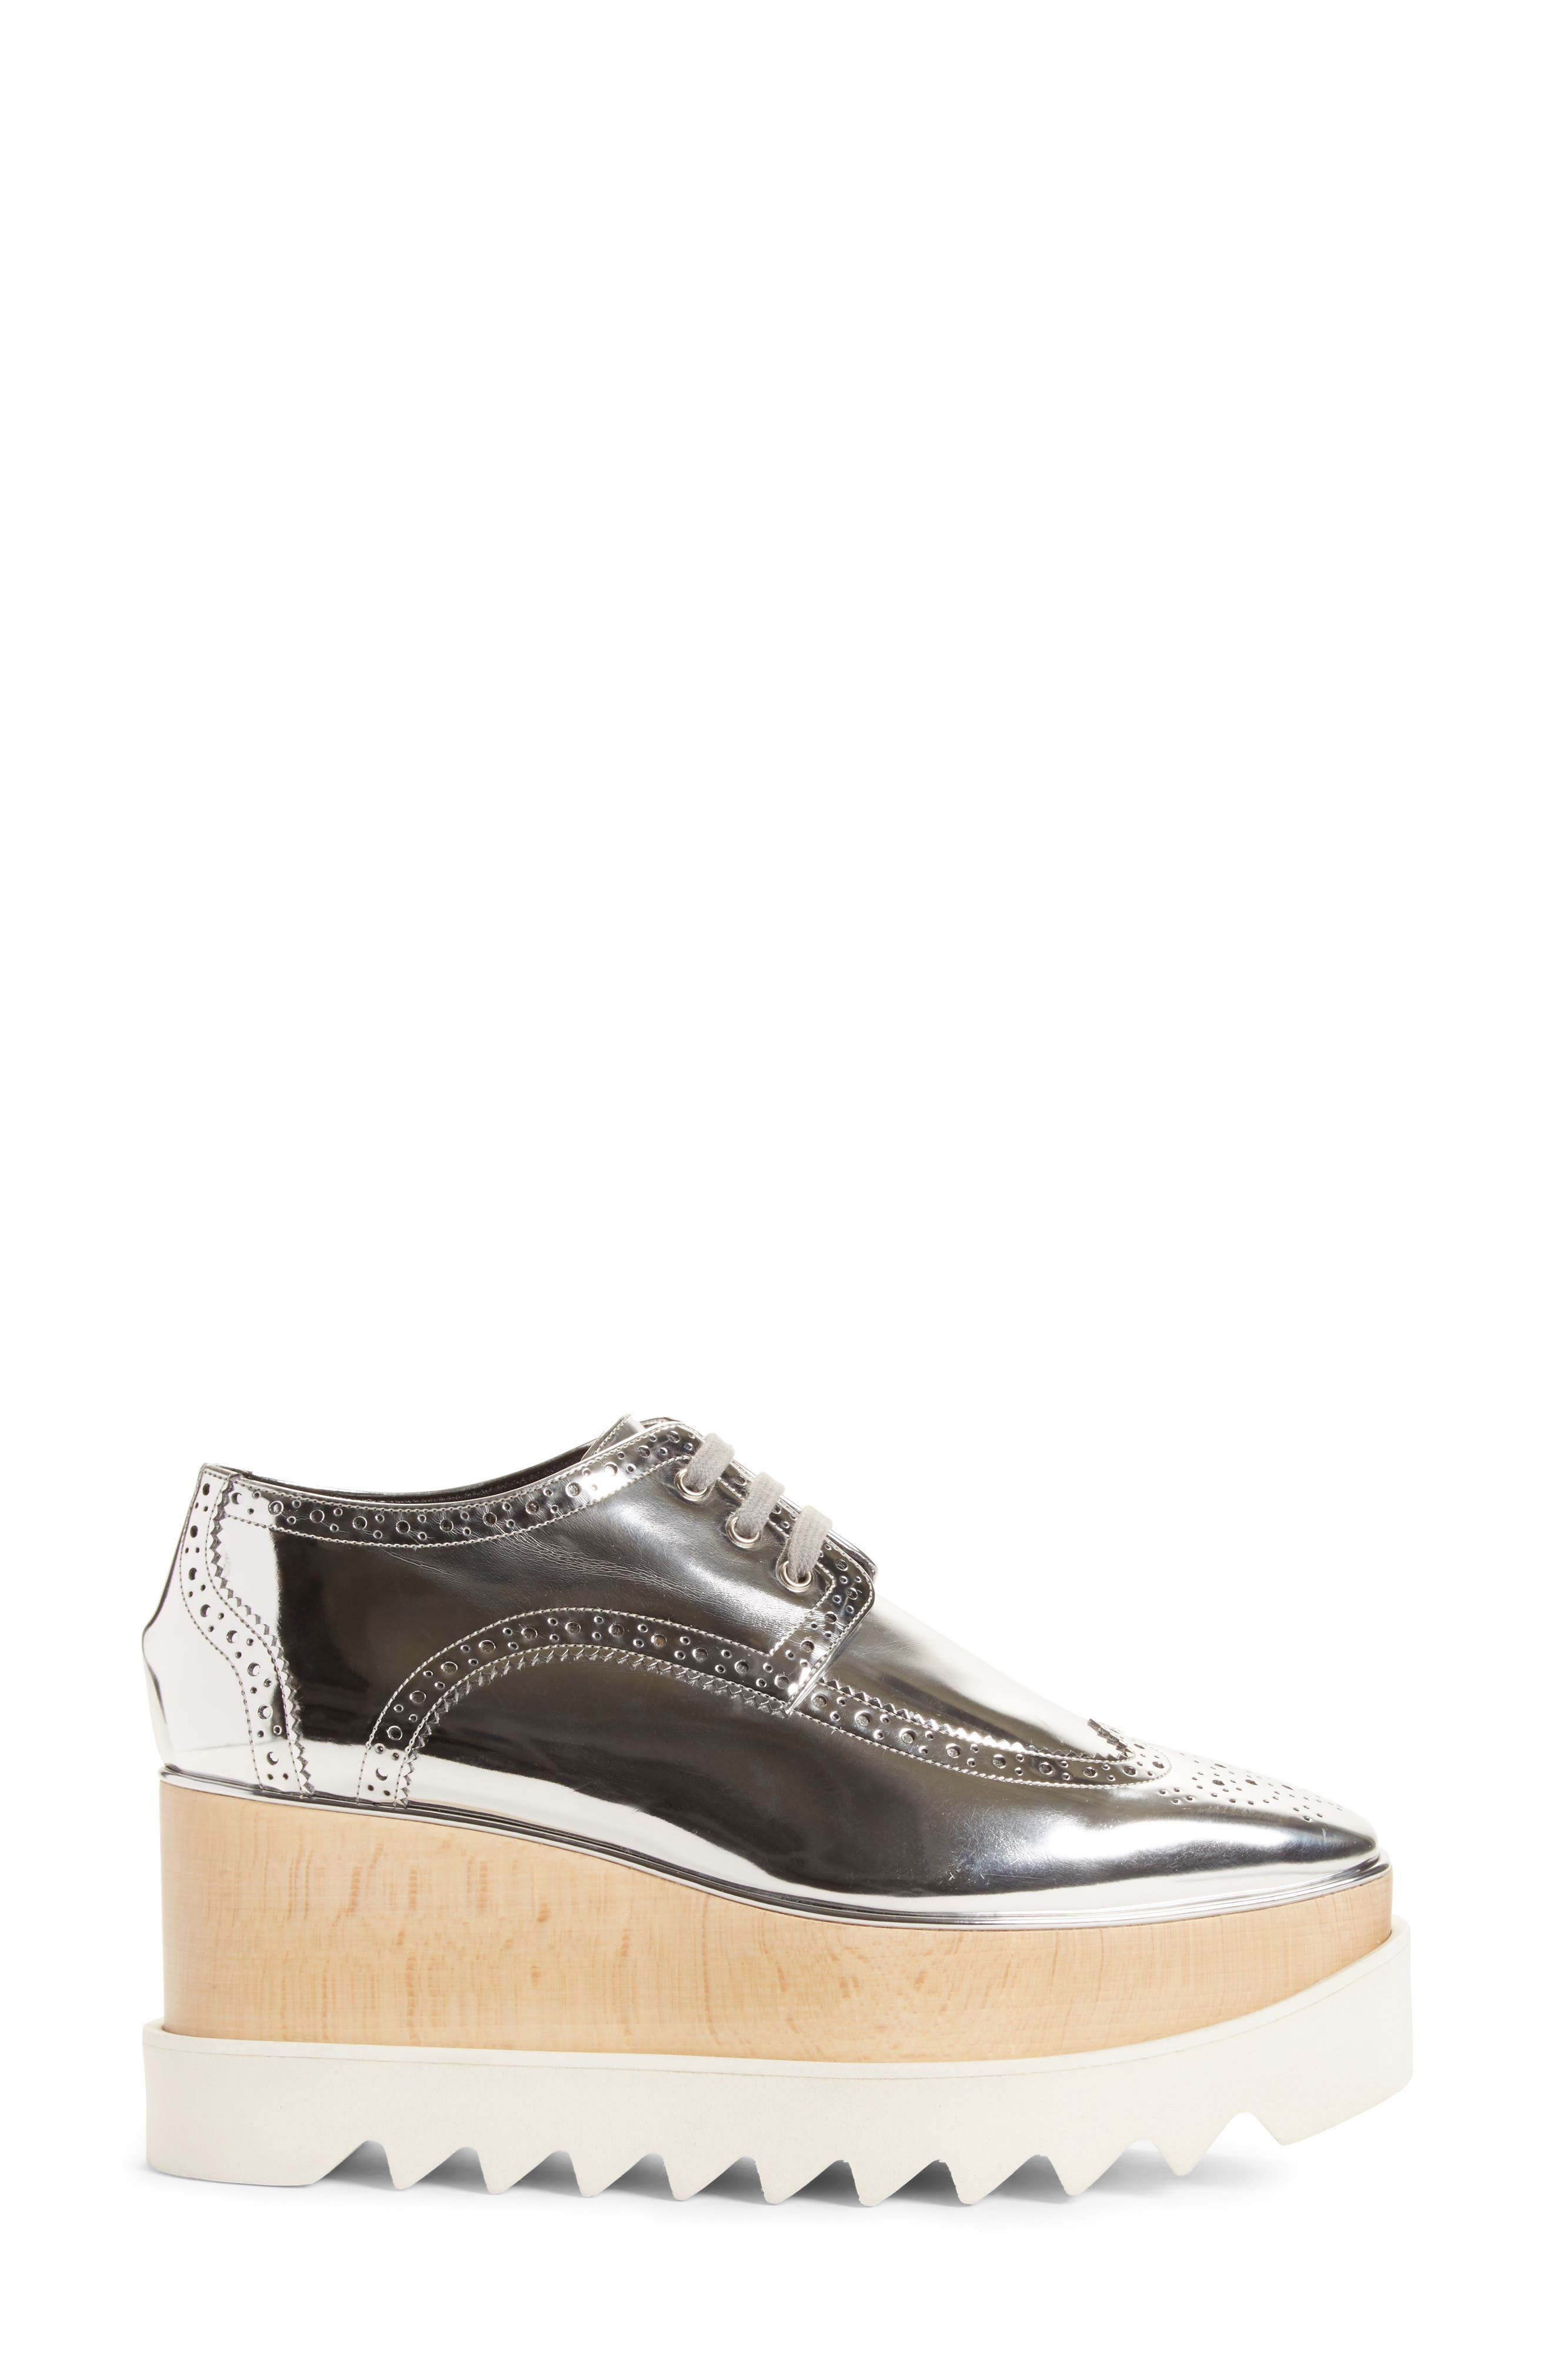 Elyse Brogue Platform Loafer,                             Alternate thumbnail 3, color,                             Metallic Silver